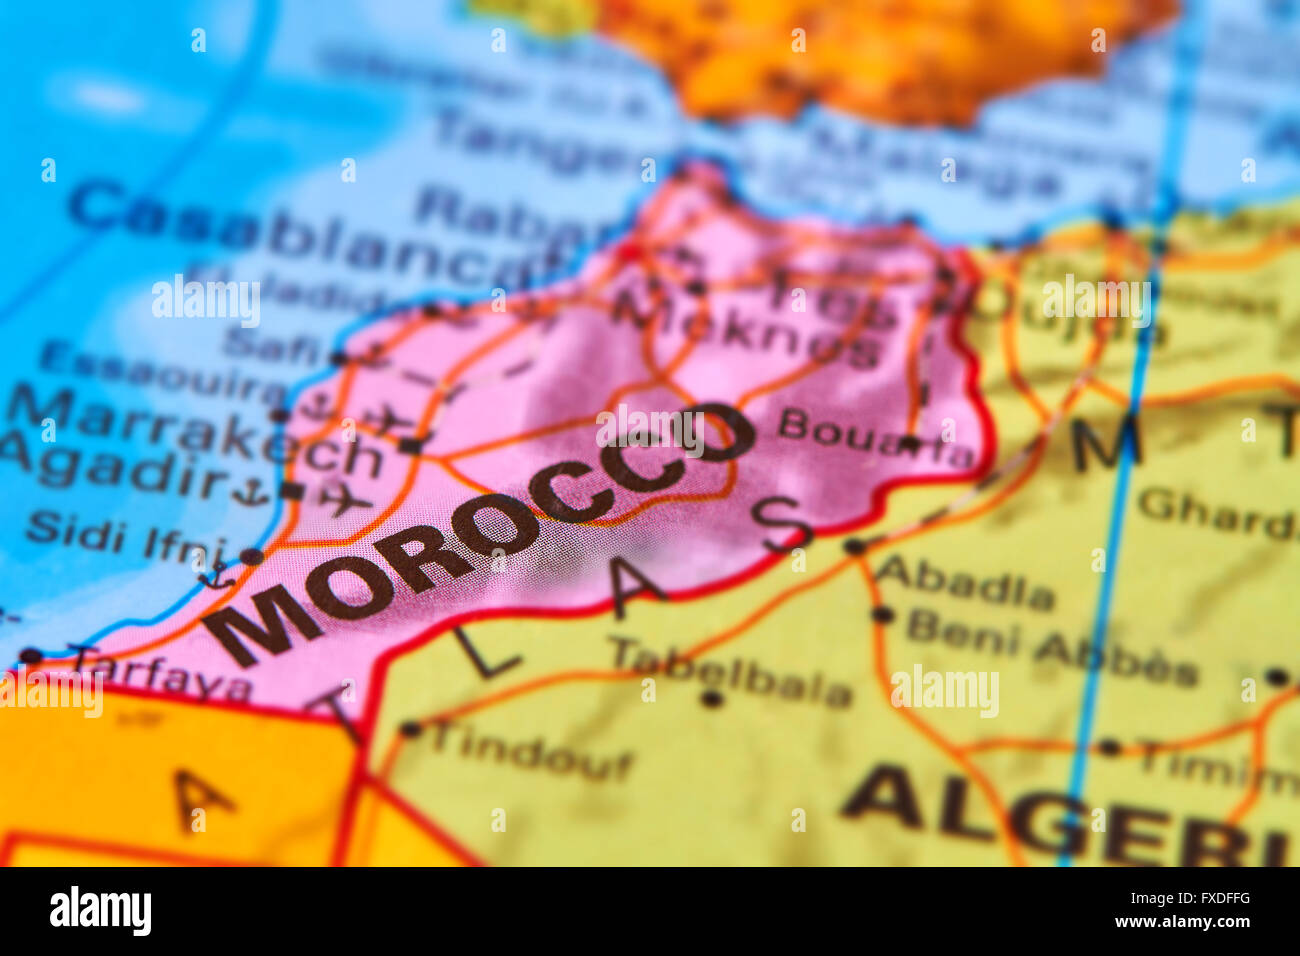 Morocco country in africa on the world map stock photo 102330468 morocco country in africa on the world map gumiabroncs Images